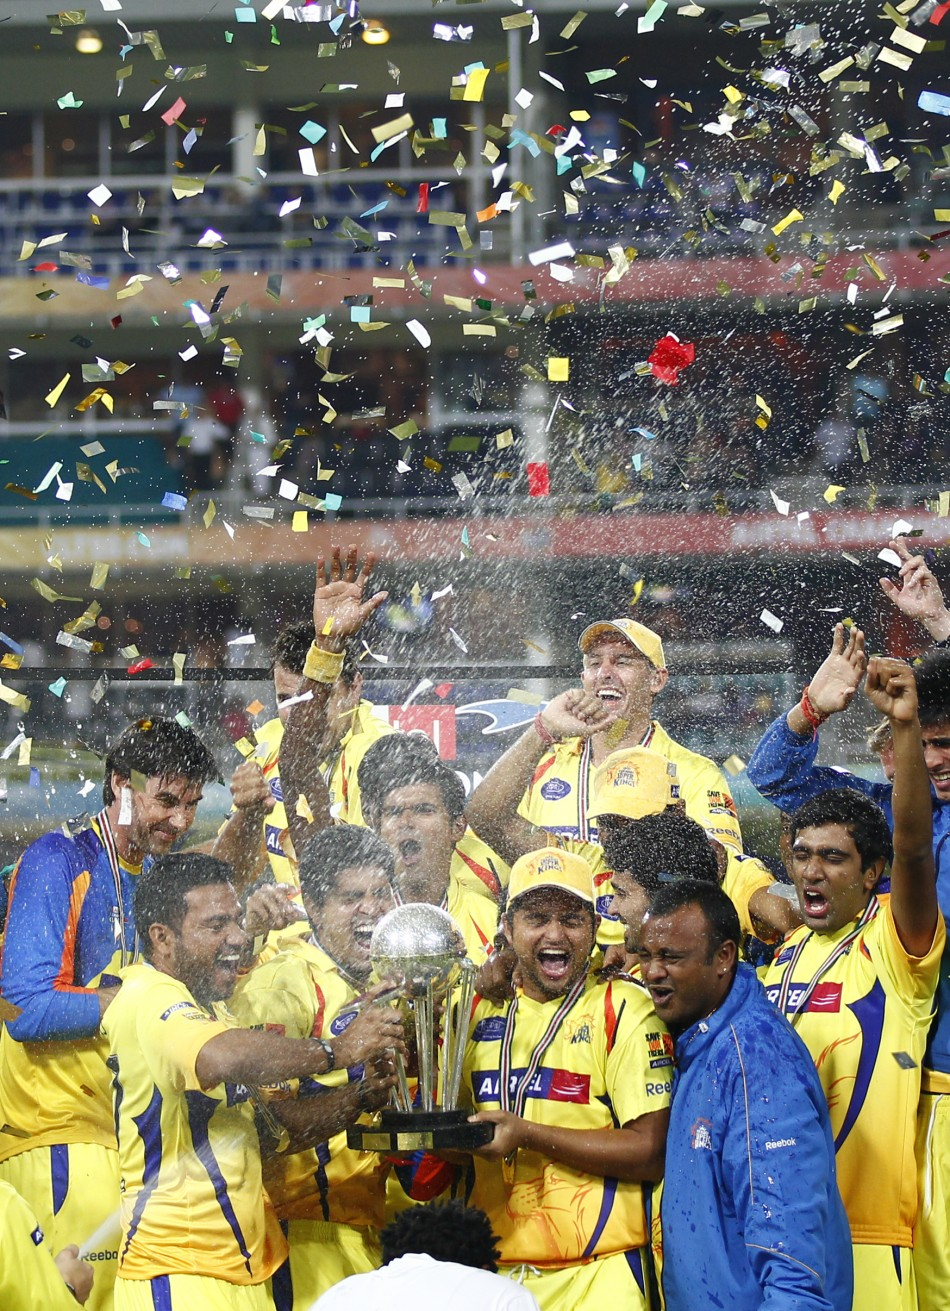 Chennai Super Kings will be banking on their home advantage as they start their quest for a third consecutive IPL trophy